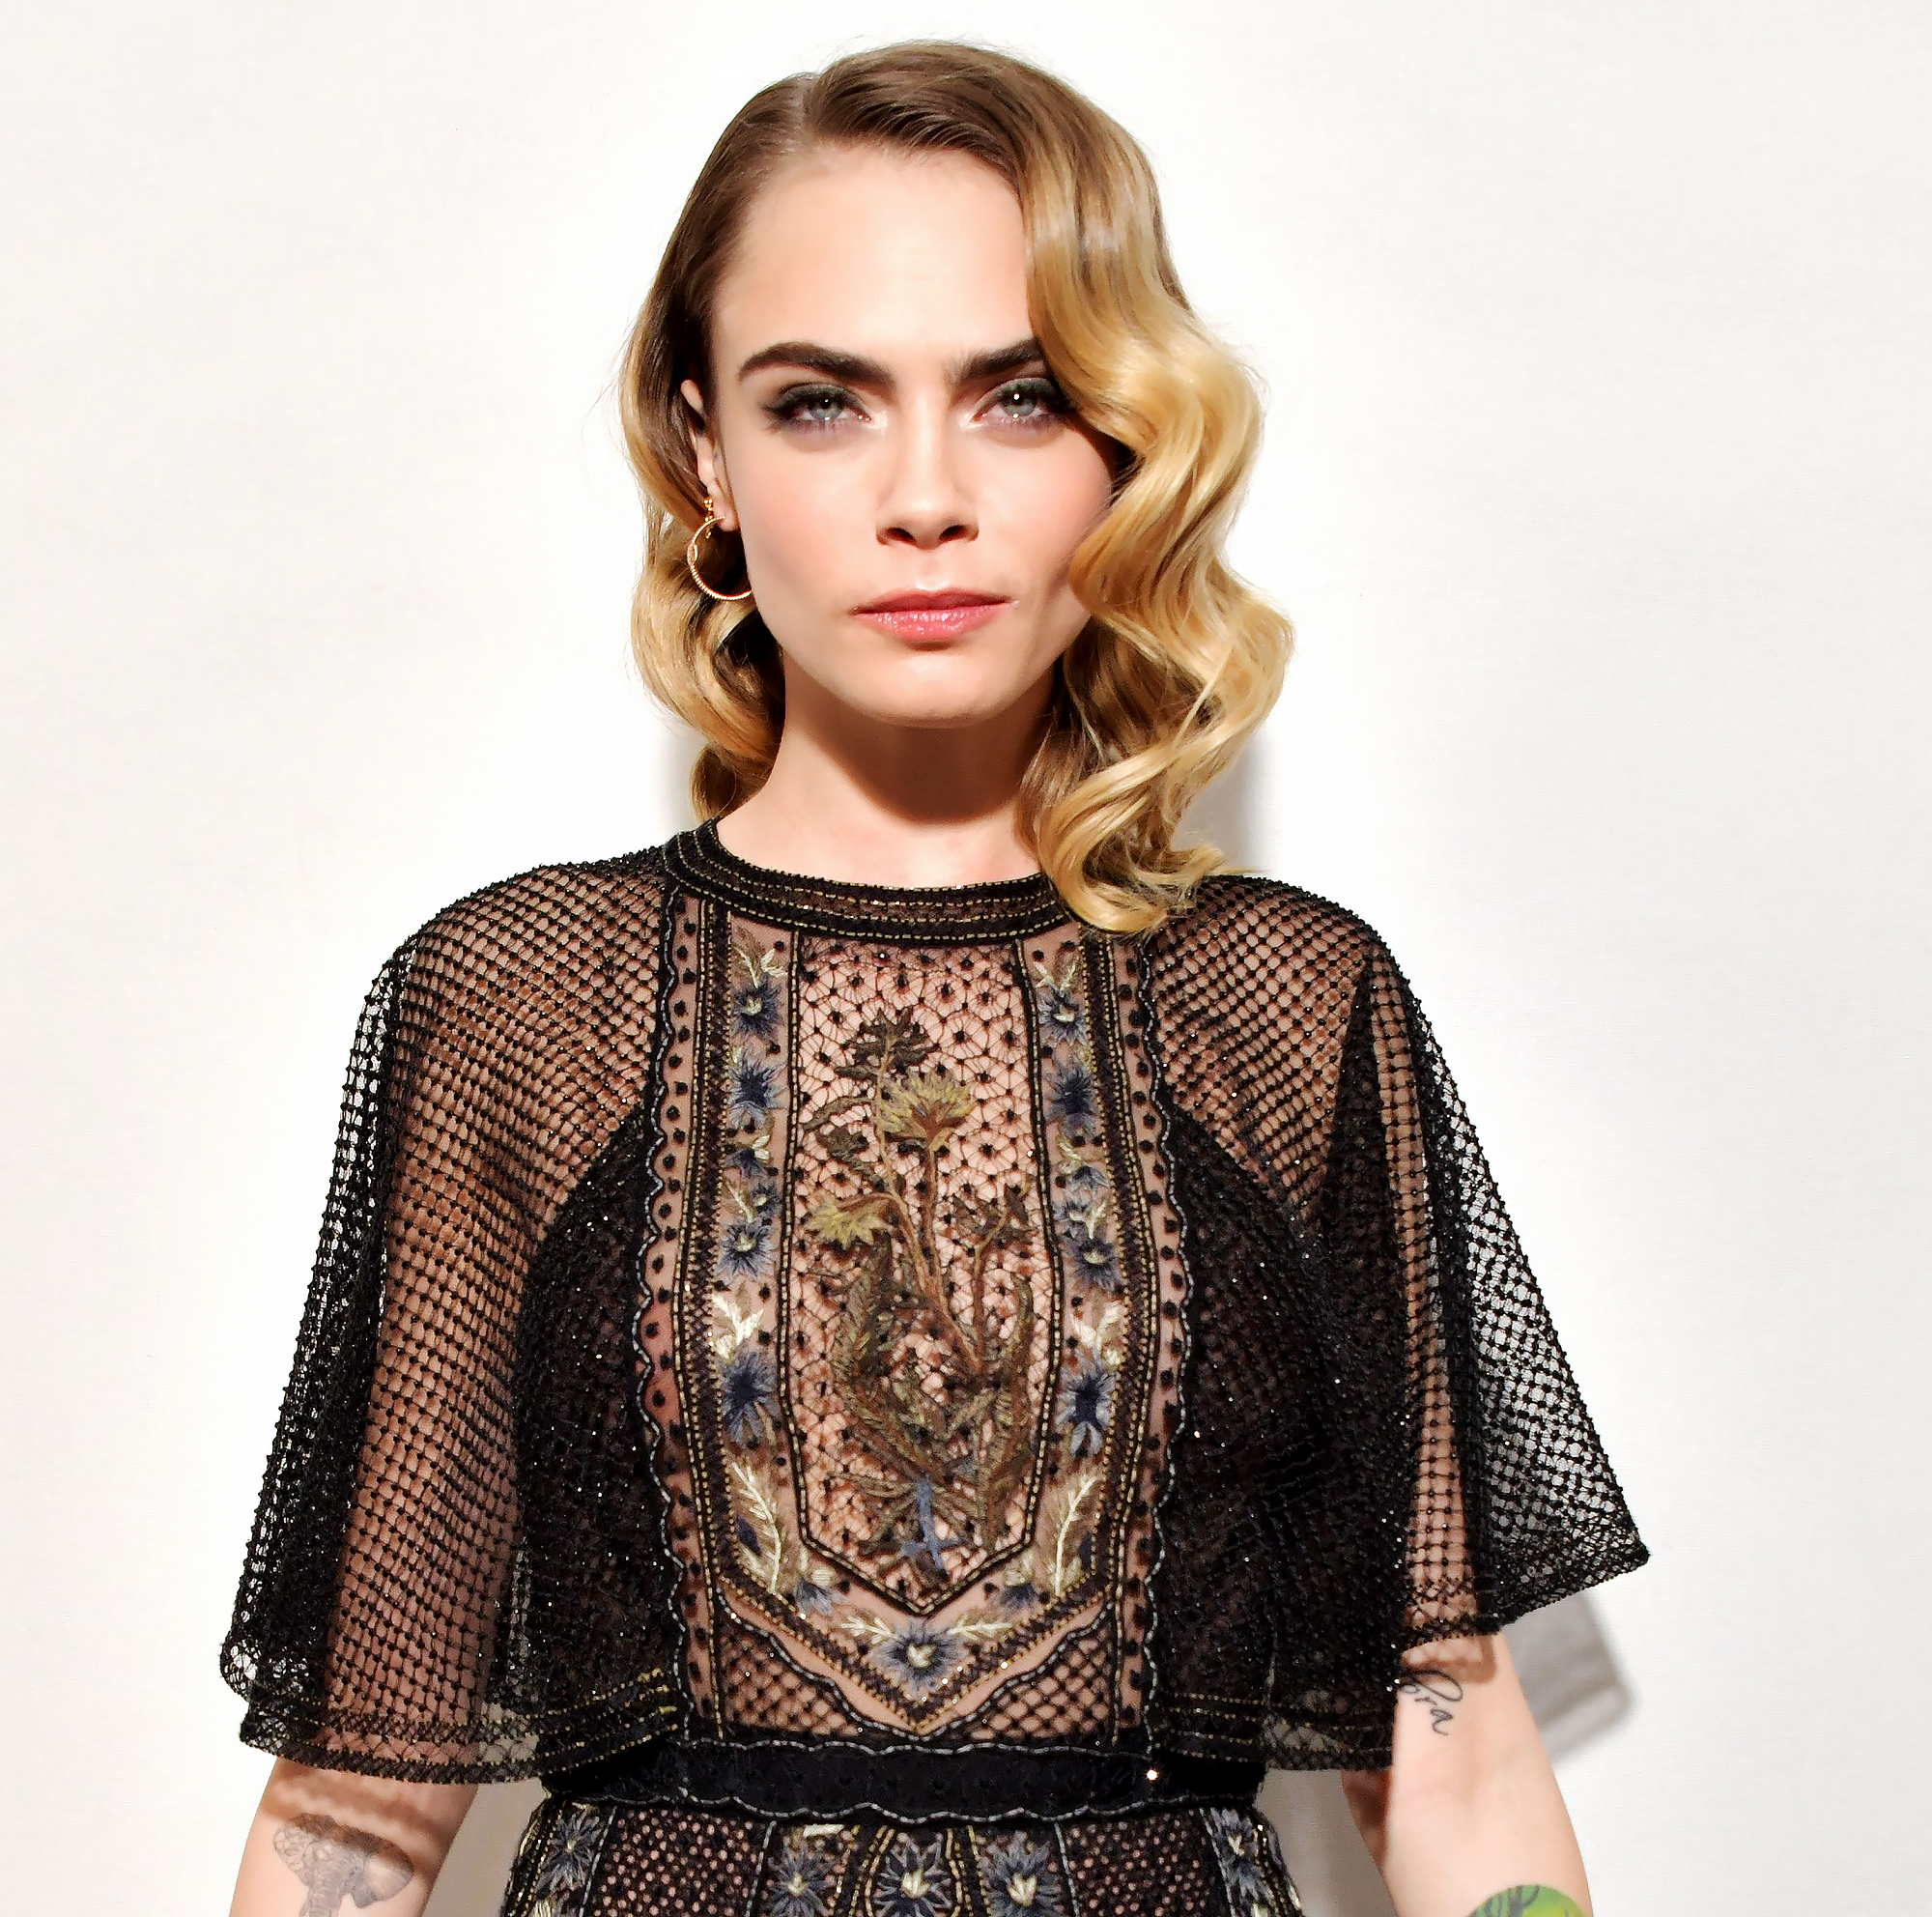 Cara Delevingne Opens Up About Her Pansexual Identity After Ashley Benson Split 2